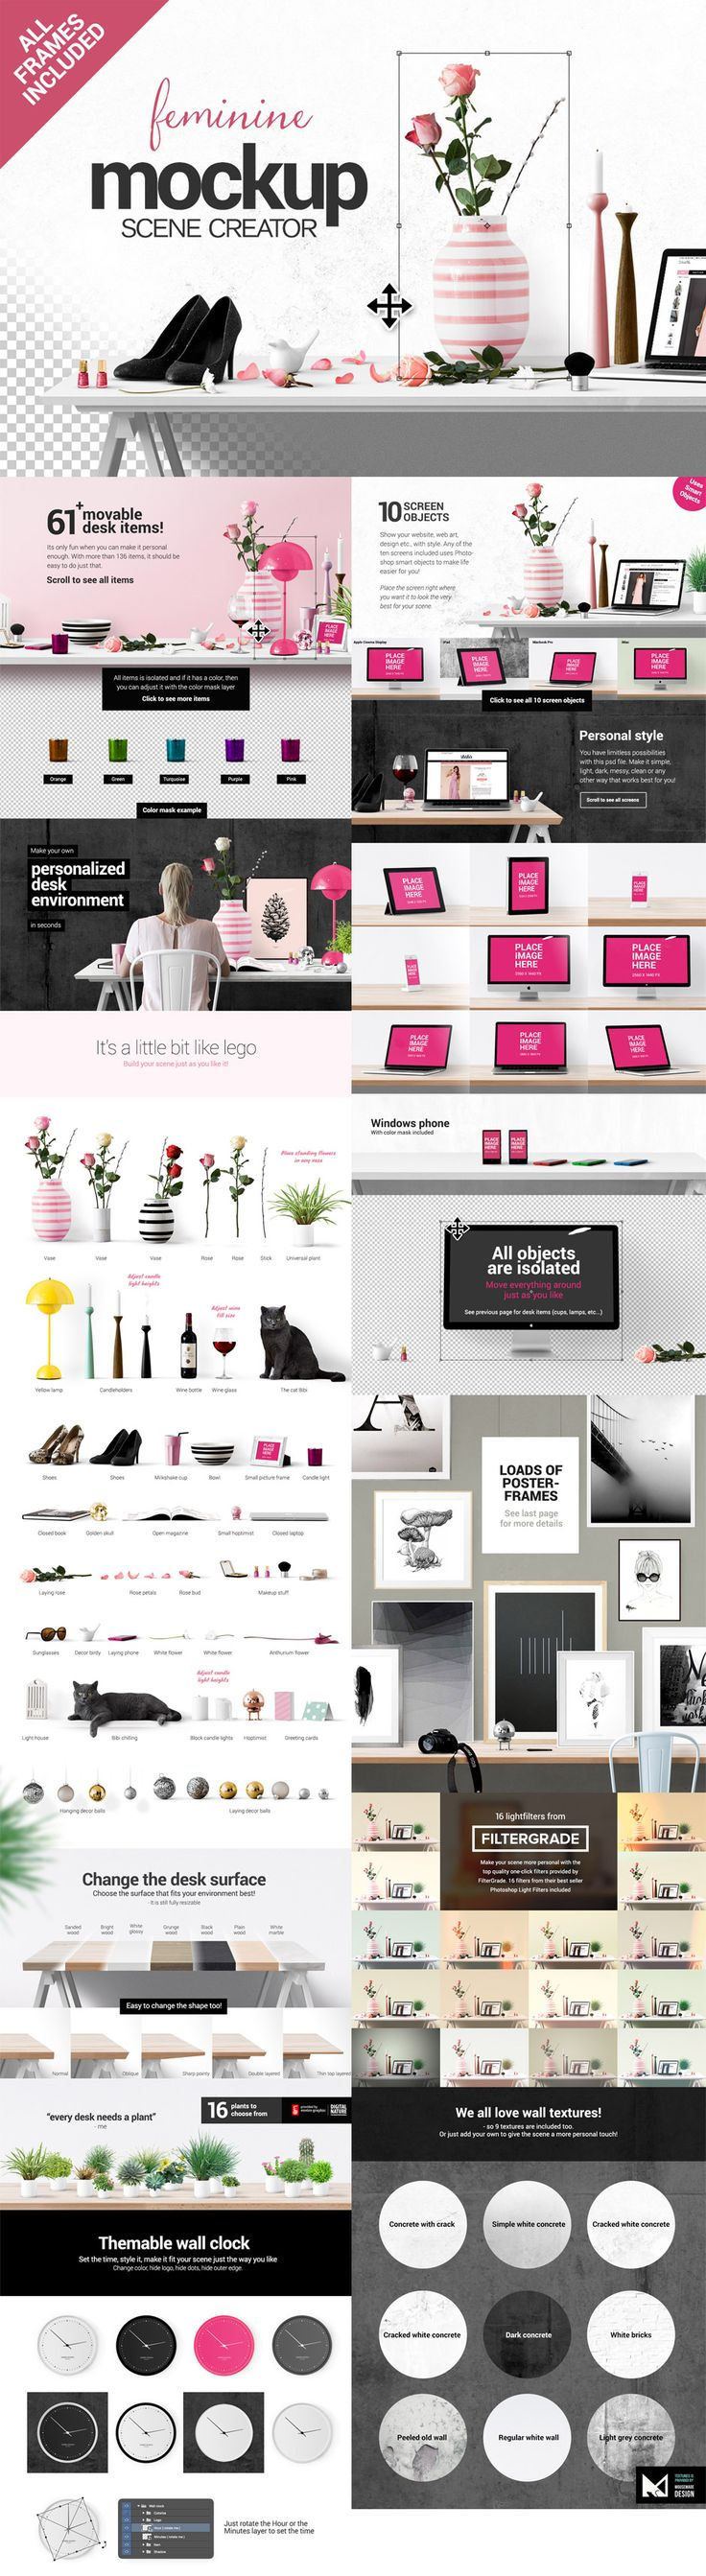 Feminine Mockup Scene Creator by Place.to | The Essential, Creative Design Arsenal (1000s of Best-Selling Resources) Bundle Feb 2015 from Design Cuts